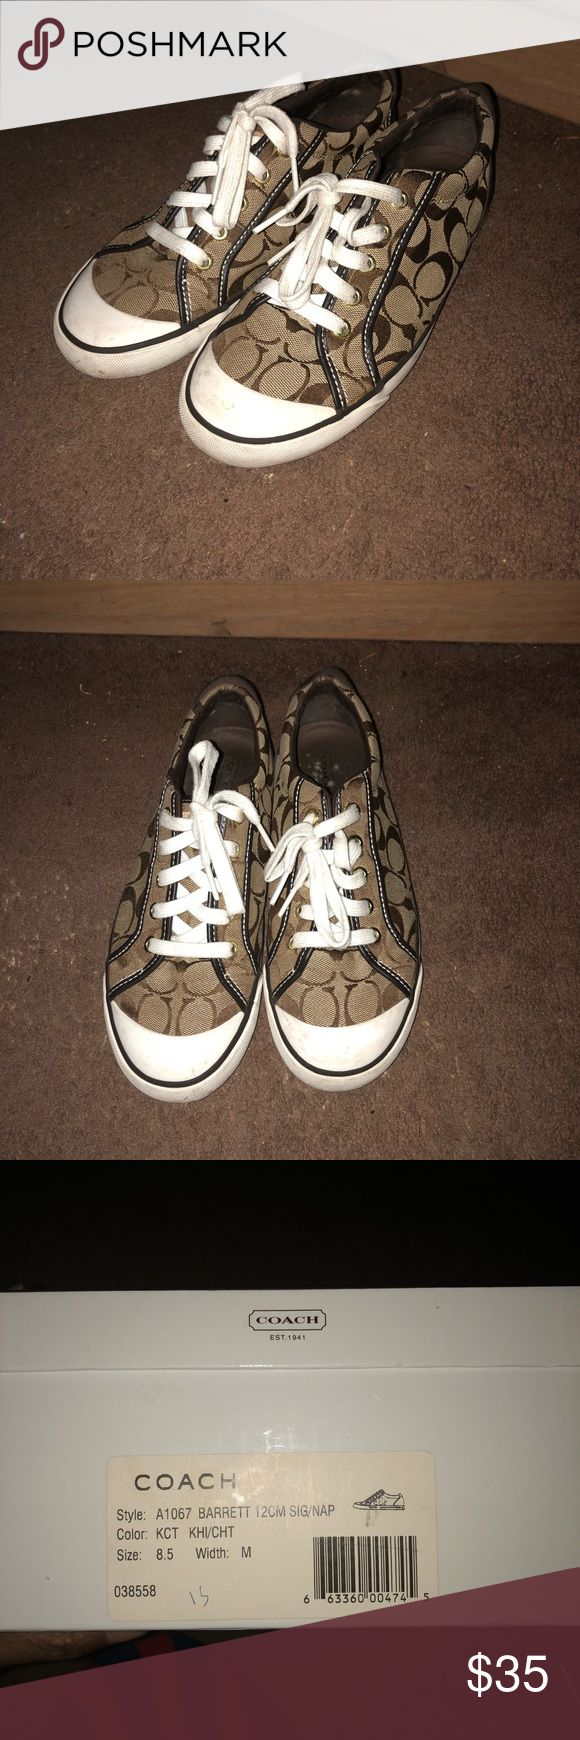 Preowned Women's COACH sneakers in size 8.5 Preowned Women's COACH sneakers. Sold as is with box. Size 8.5 Coach Shoes Sneakers